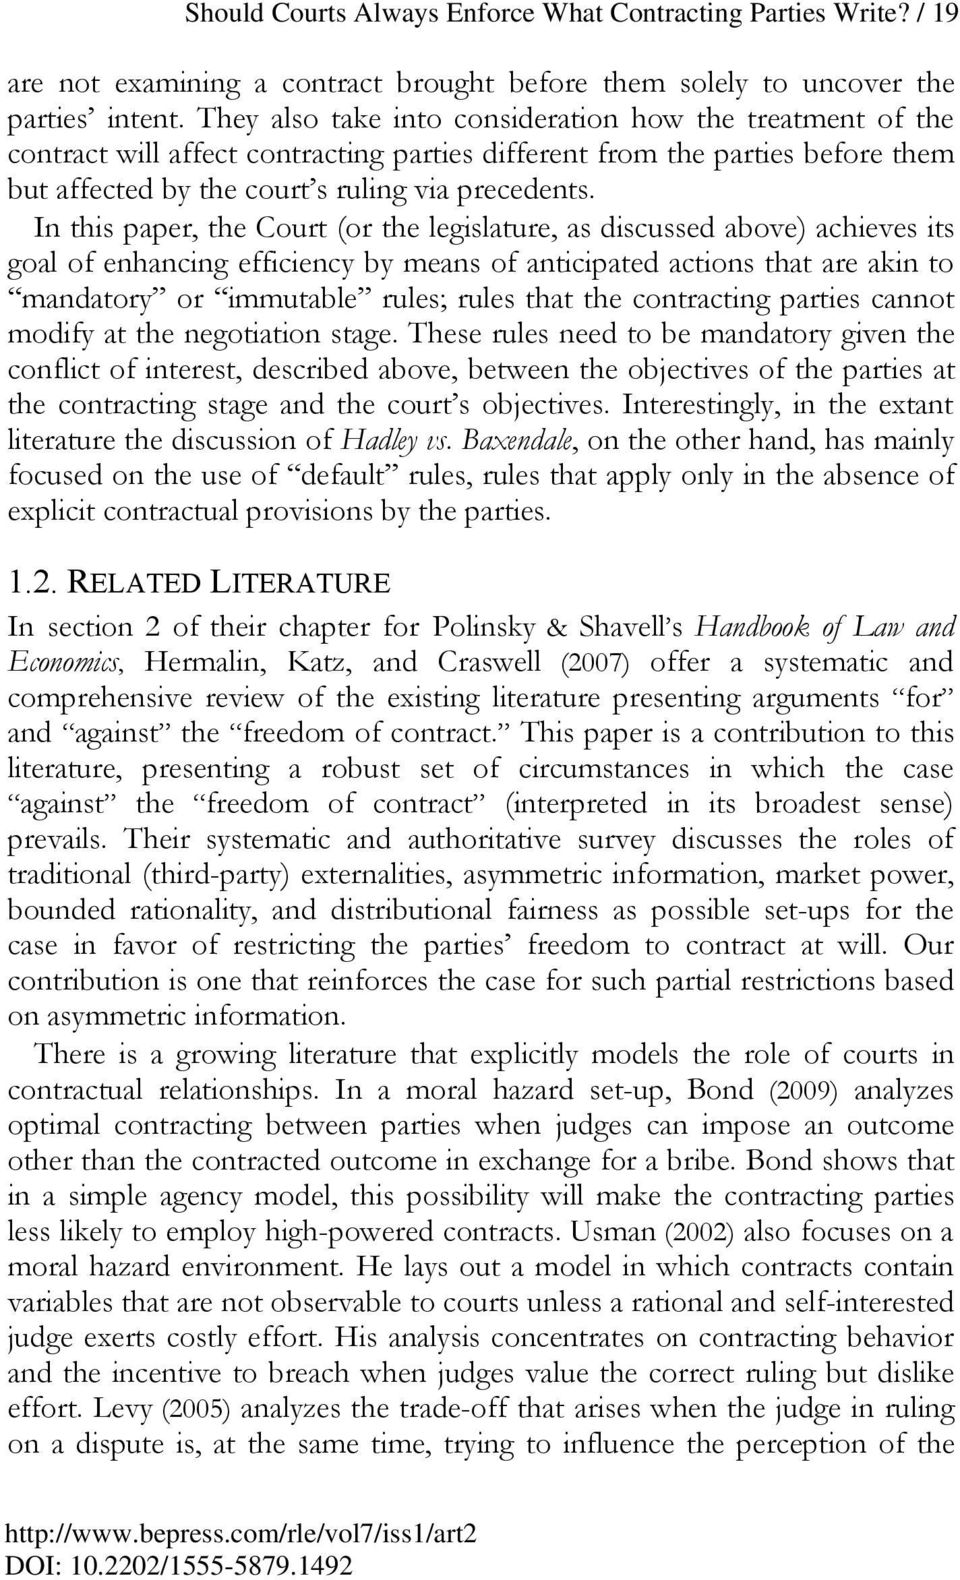 In this paper, the Court (or the legislature, as discussed above) achieves its goal of enhancing efficiency by means of anticipated actions that are akin to mandatory or immutable rules; rules that